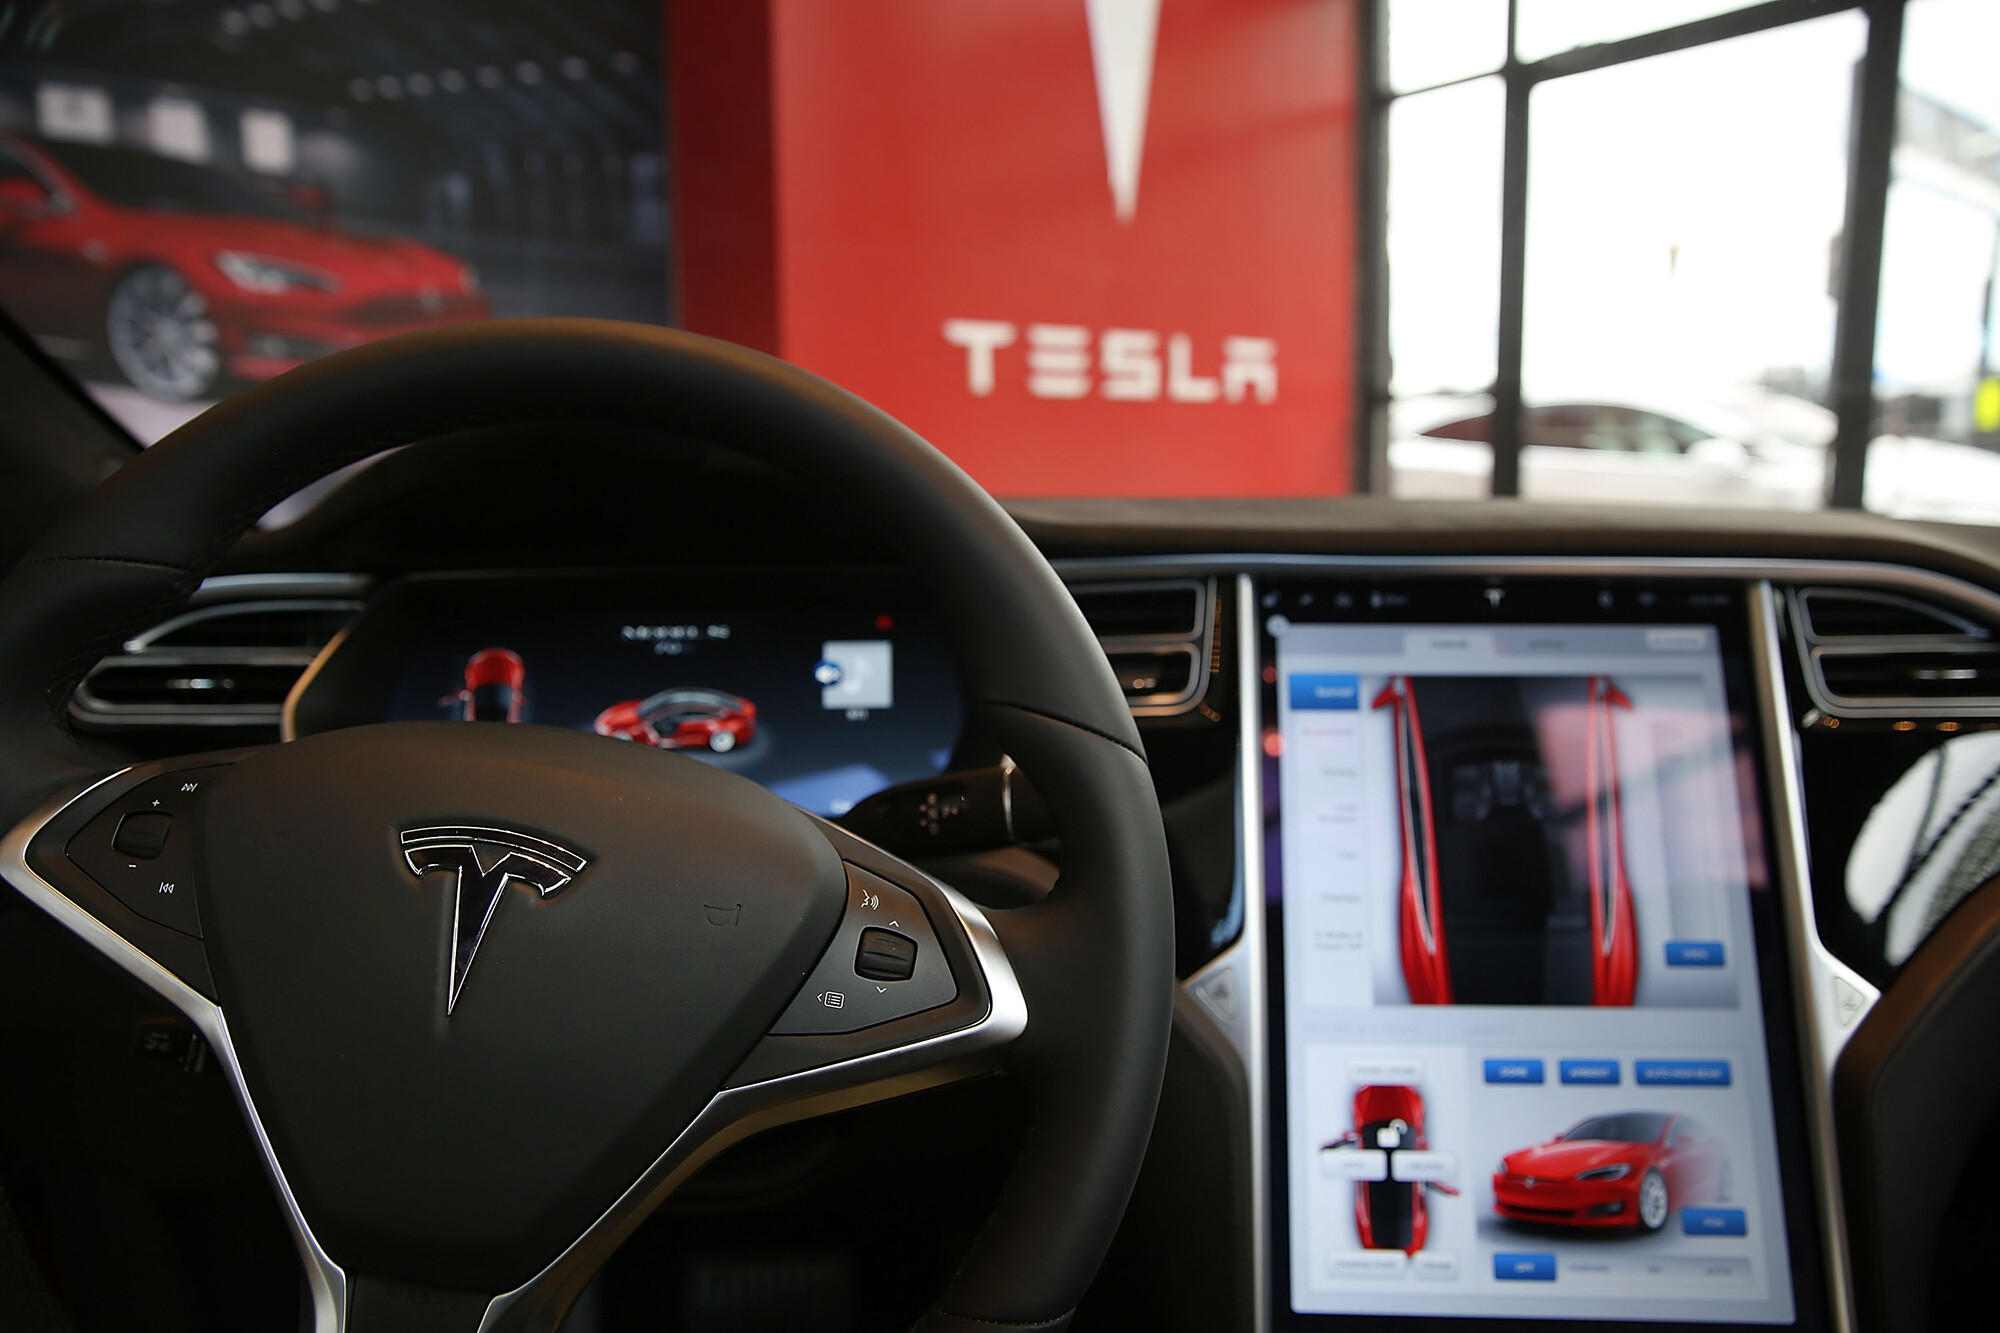 How Tesla can sell 'full self-driving' software that doesn't really drive itself